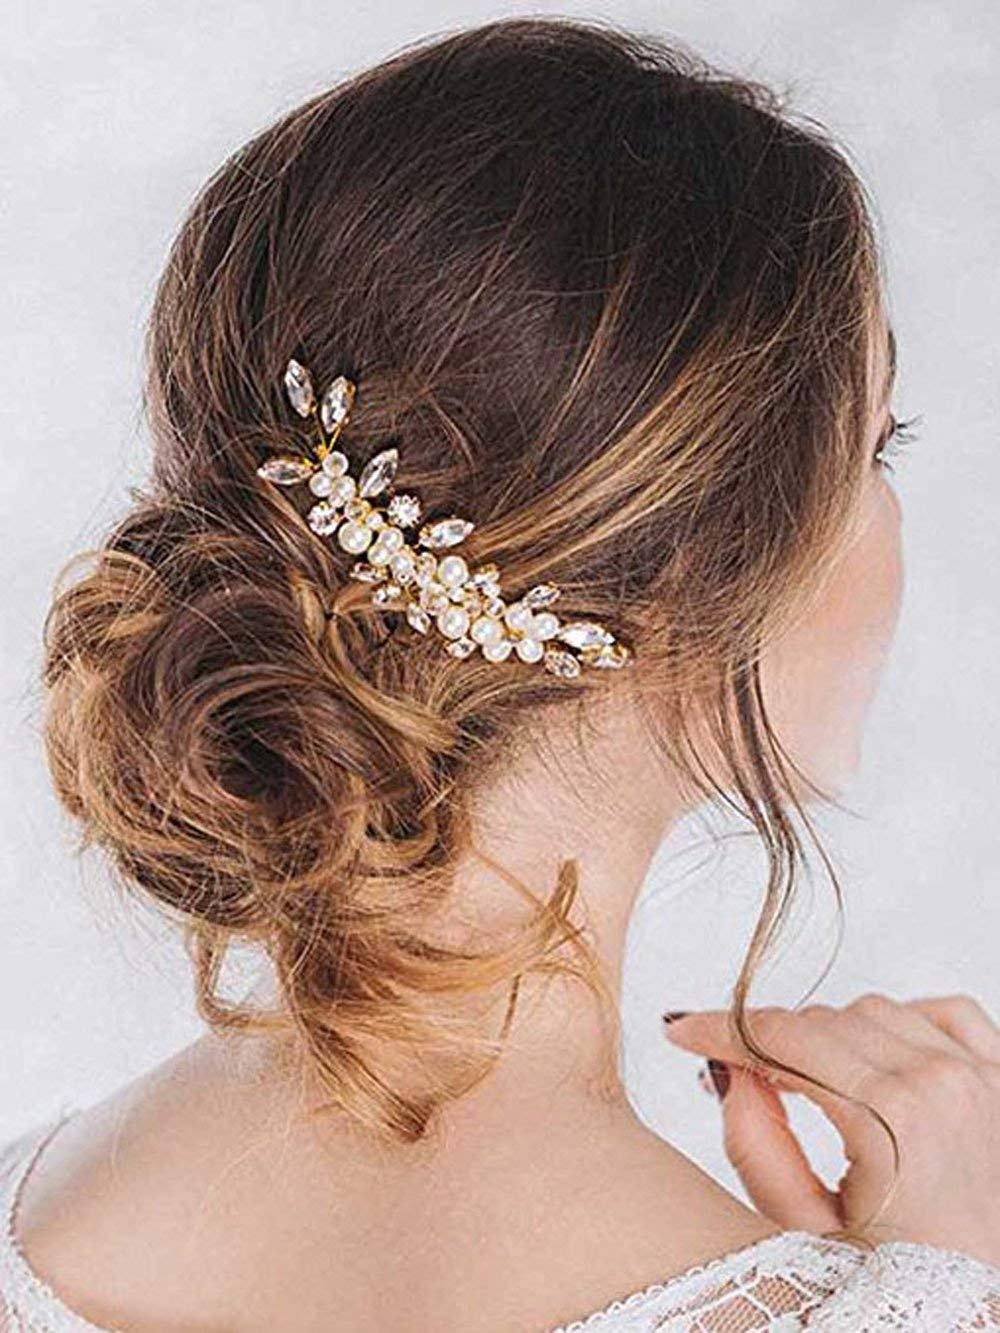 Wedding Prom Hair Comb Piece For Women And Flower Girls Hair Evening Hairstyle For Sale Online